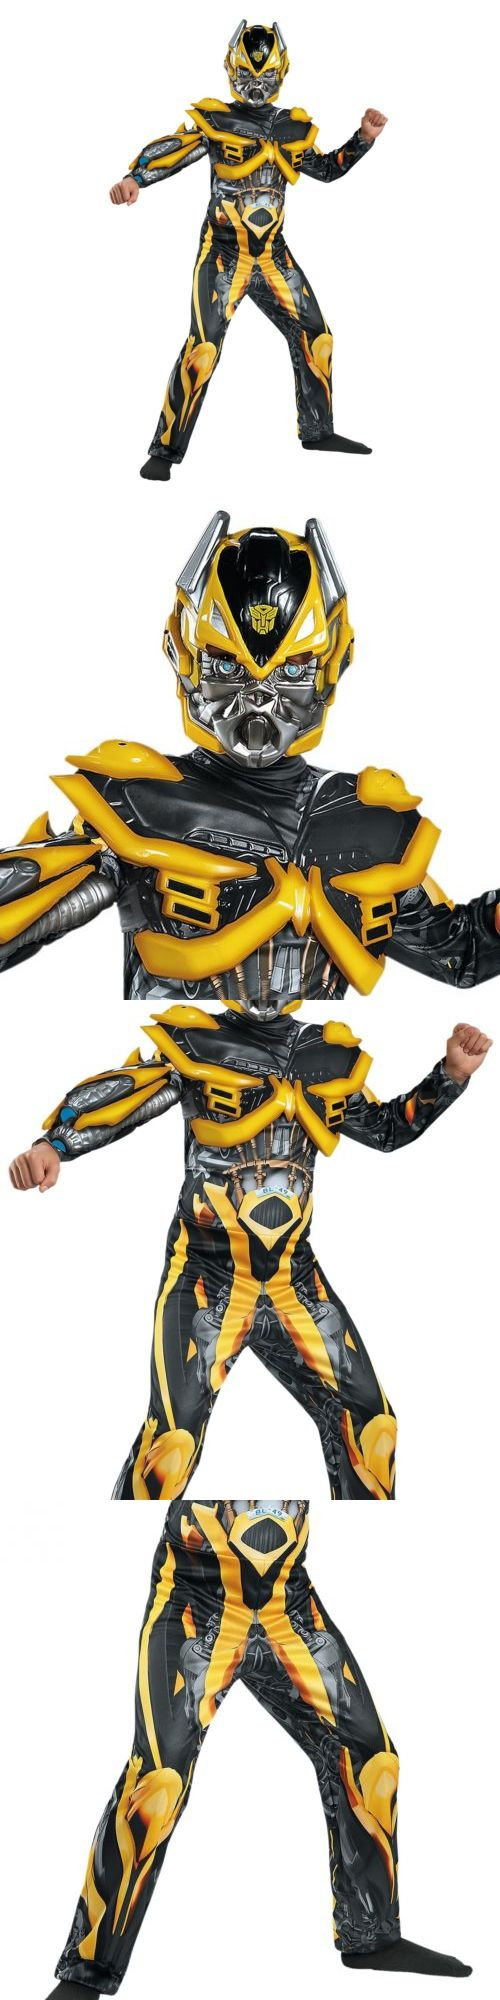 Best 25+ Transformer halloween costume ideas on Pinterest ...